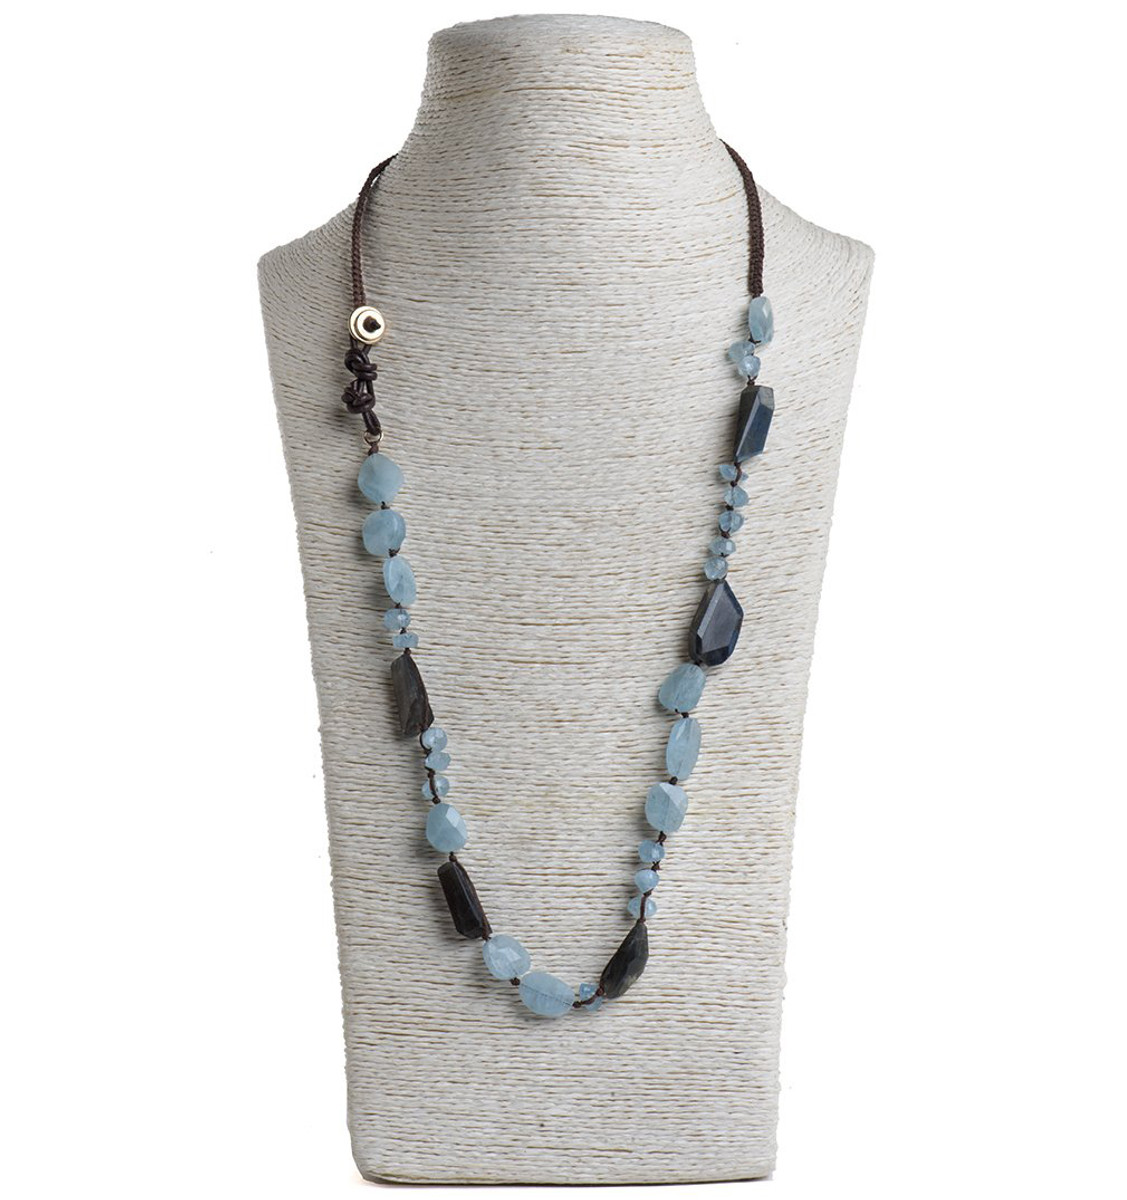 Autumn Chic Necklace - New Arrival